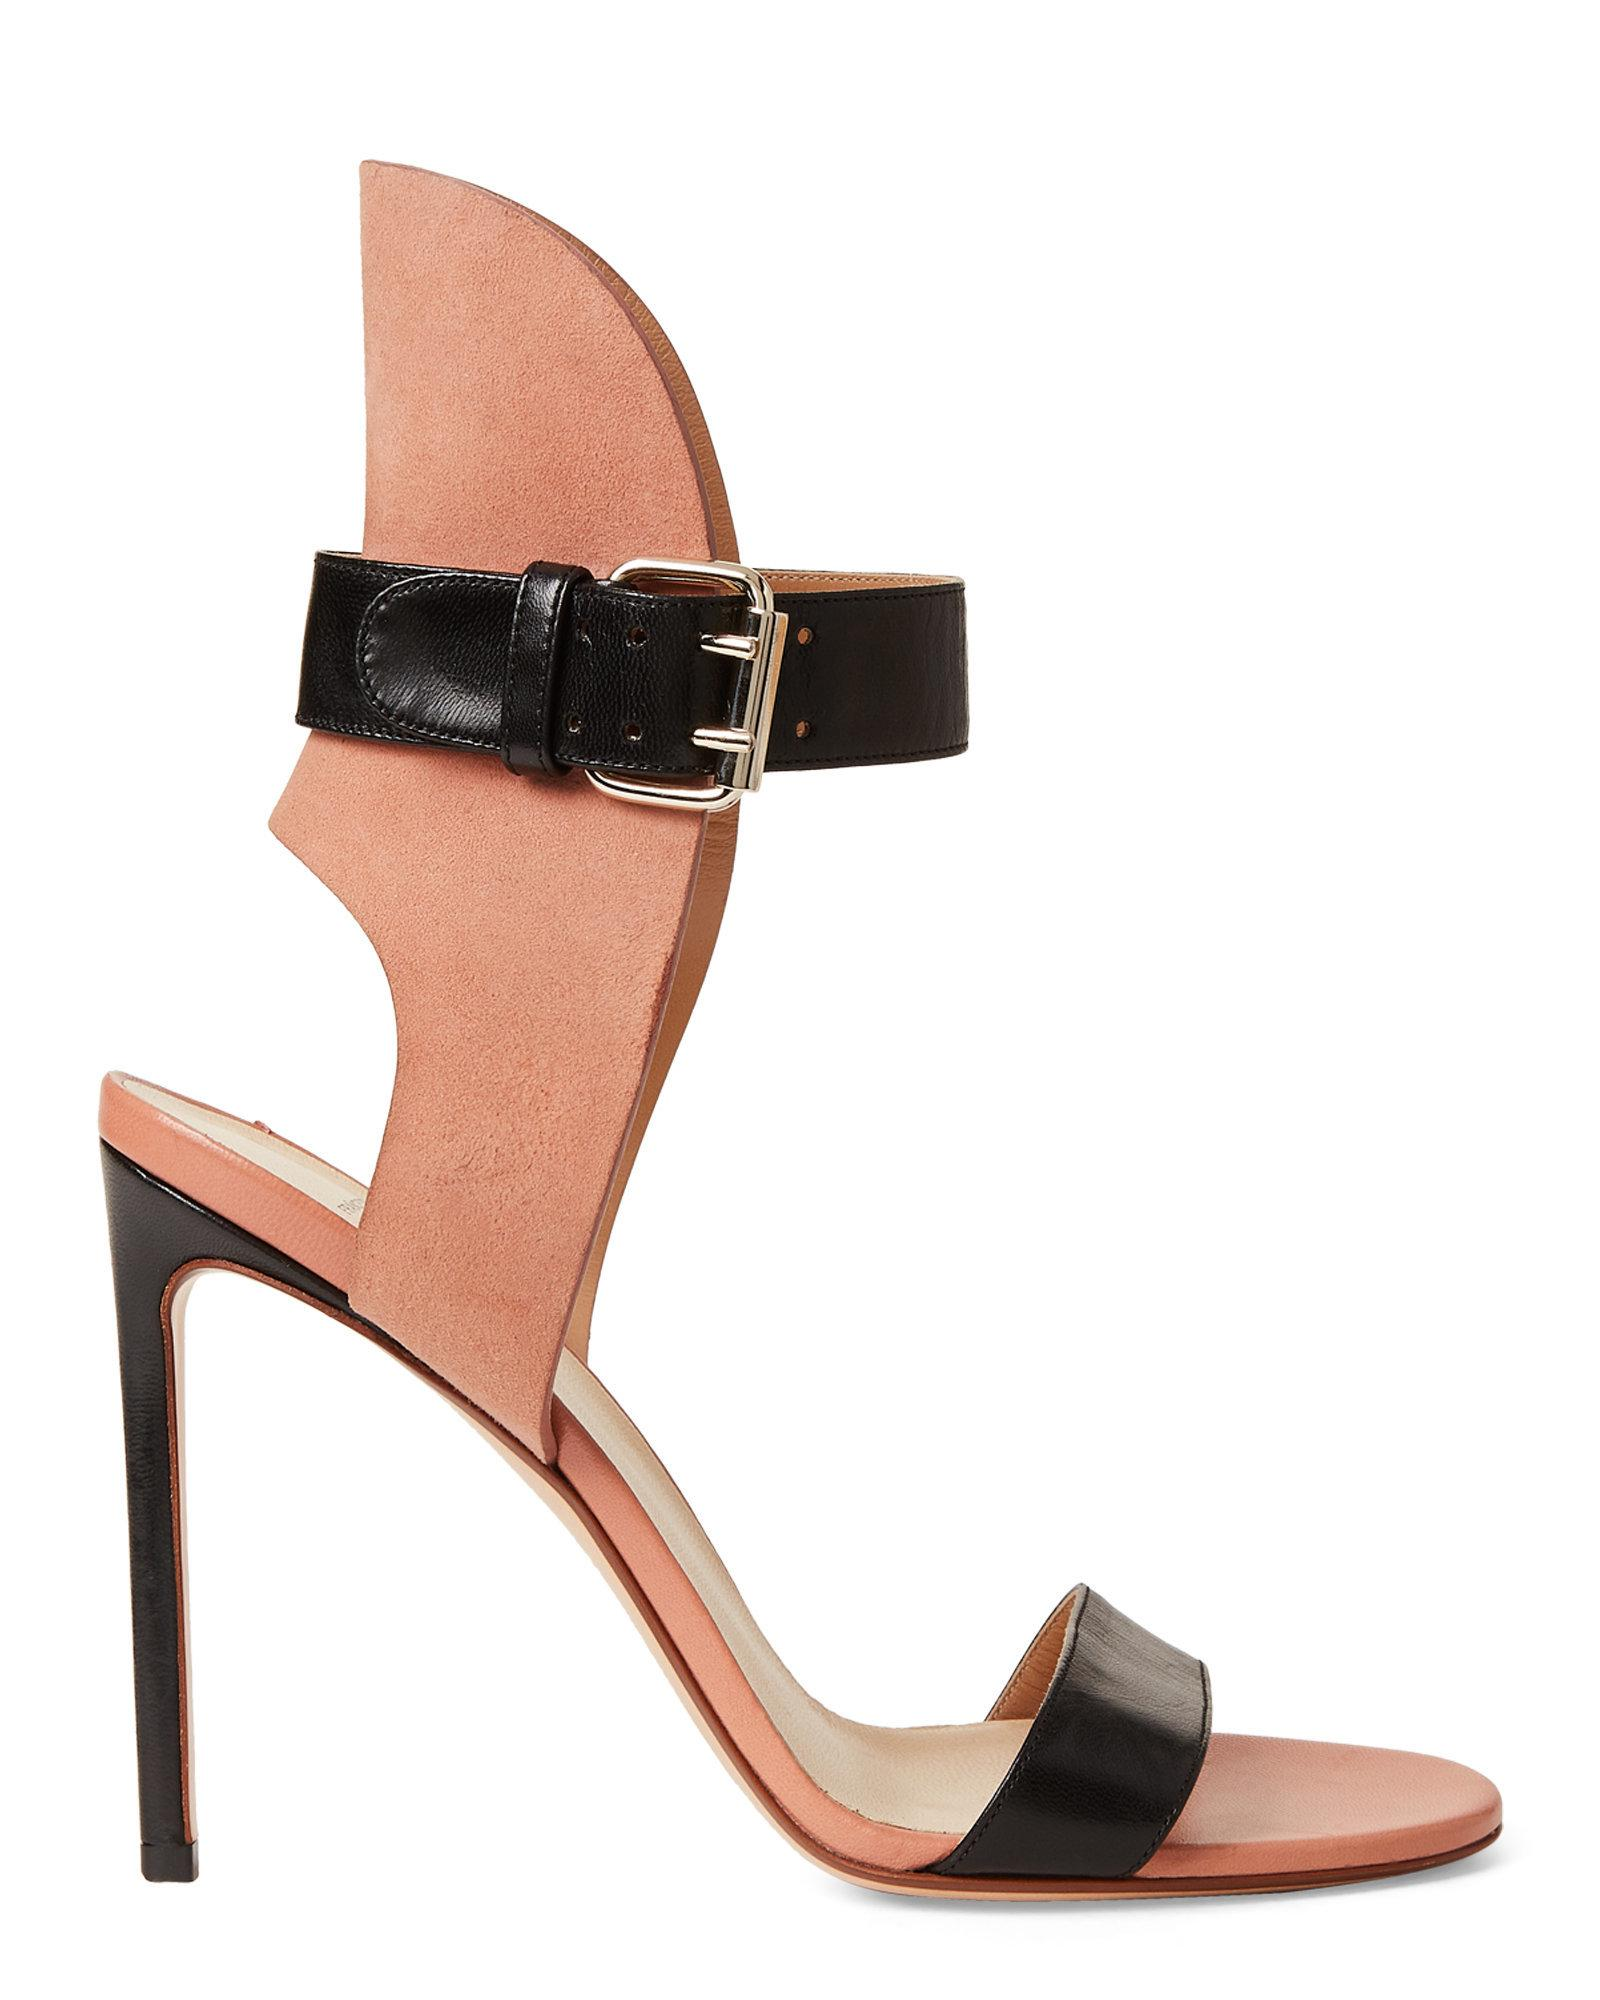 77ba2a76012 Lyst - Francesco Russo Leather Ankle Strap Sandals in Black